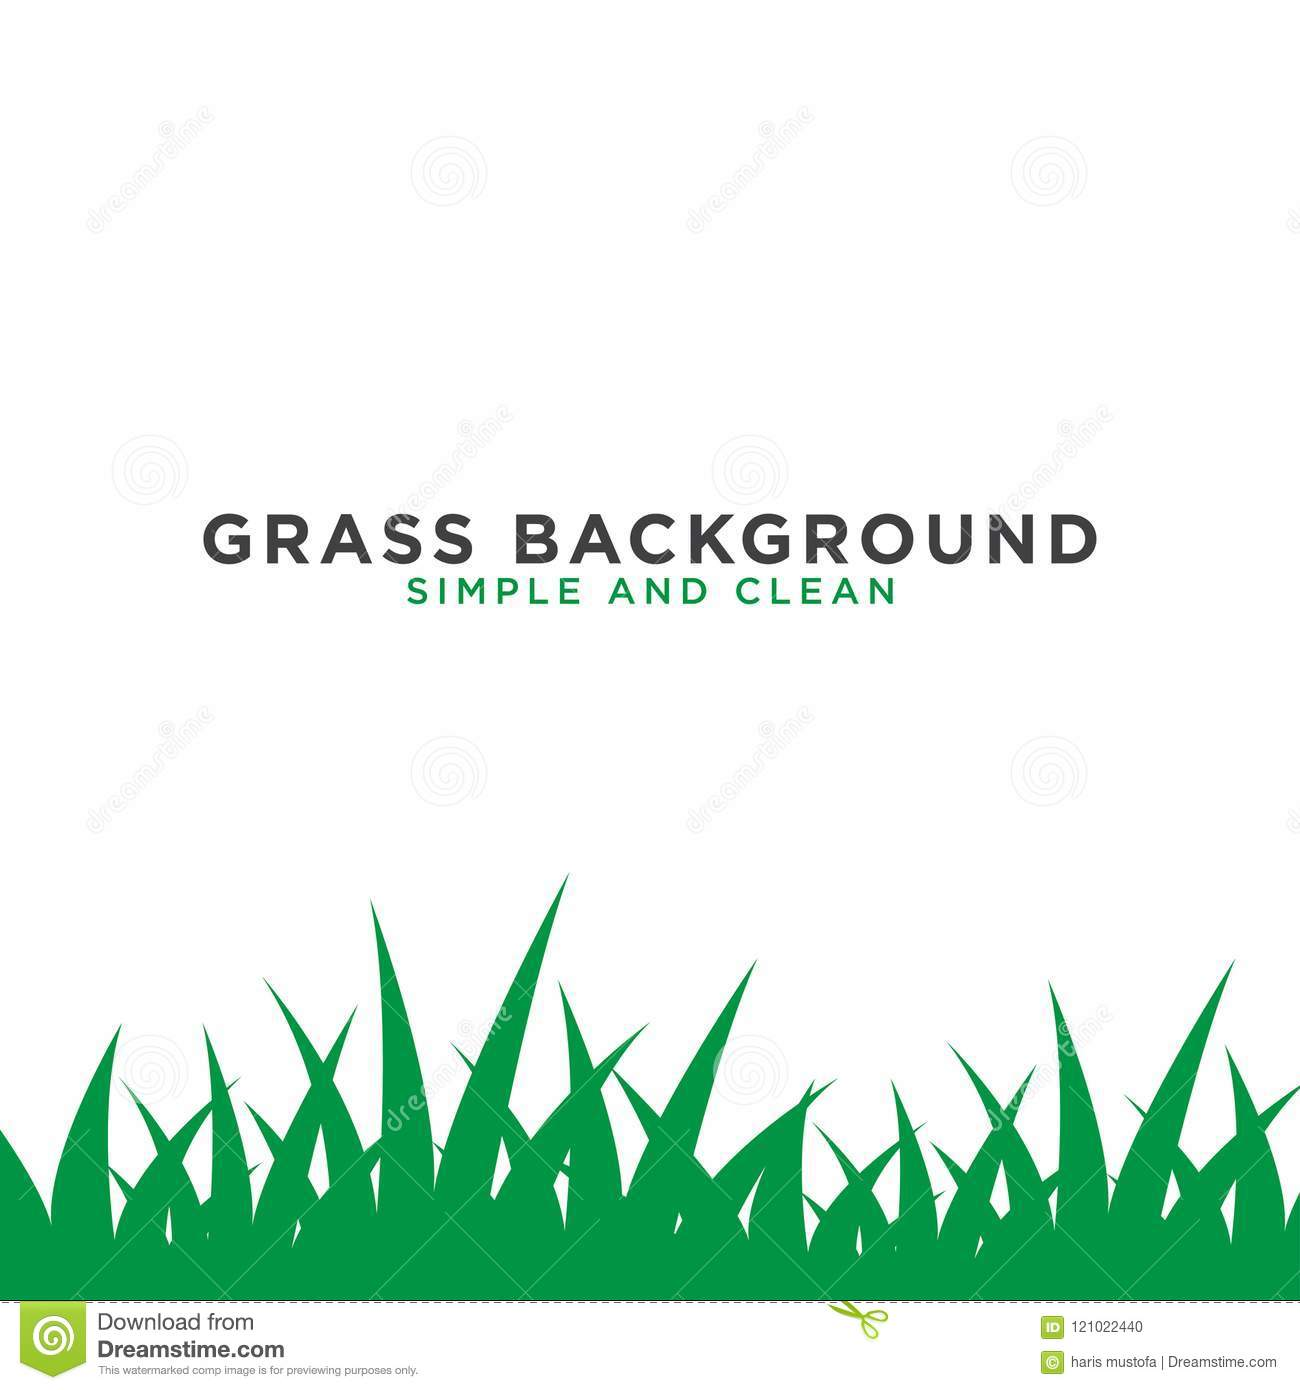 Grass Background Design Template Stock Vector - Illustration of